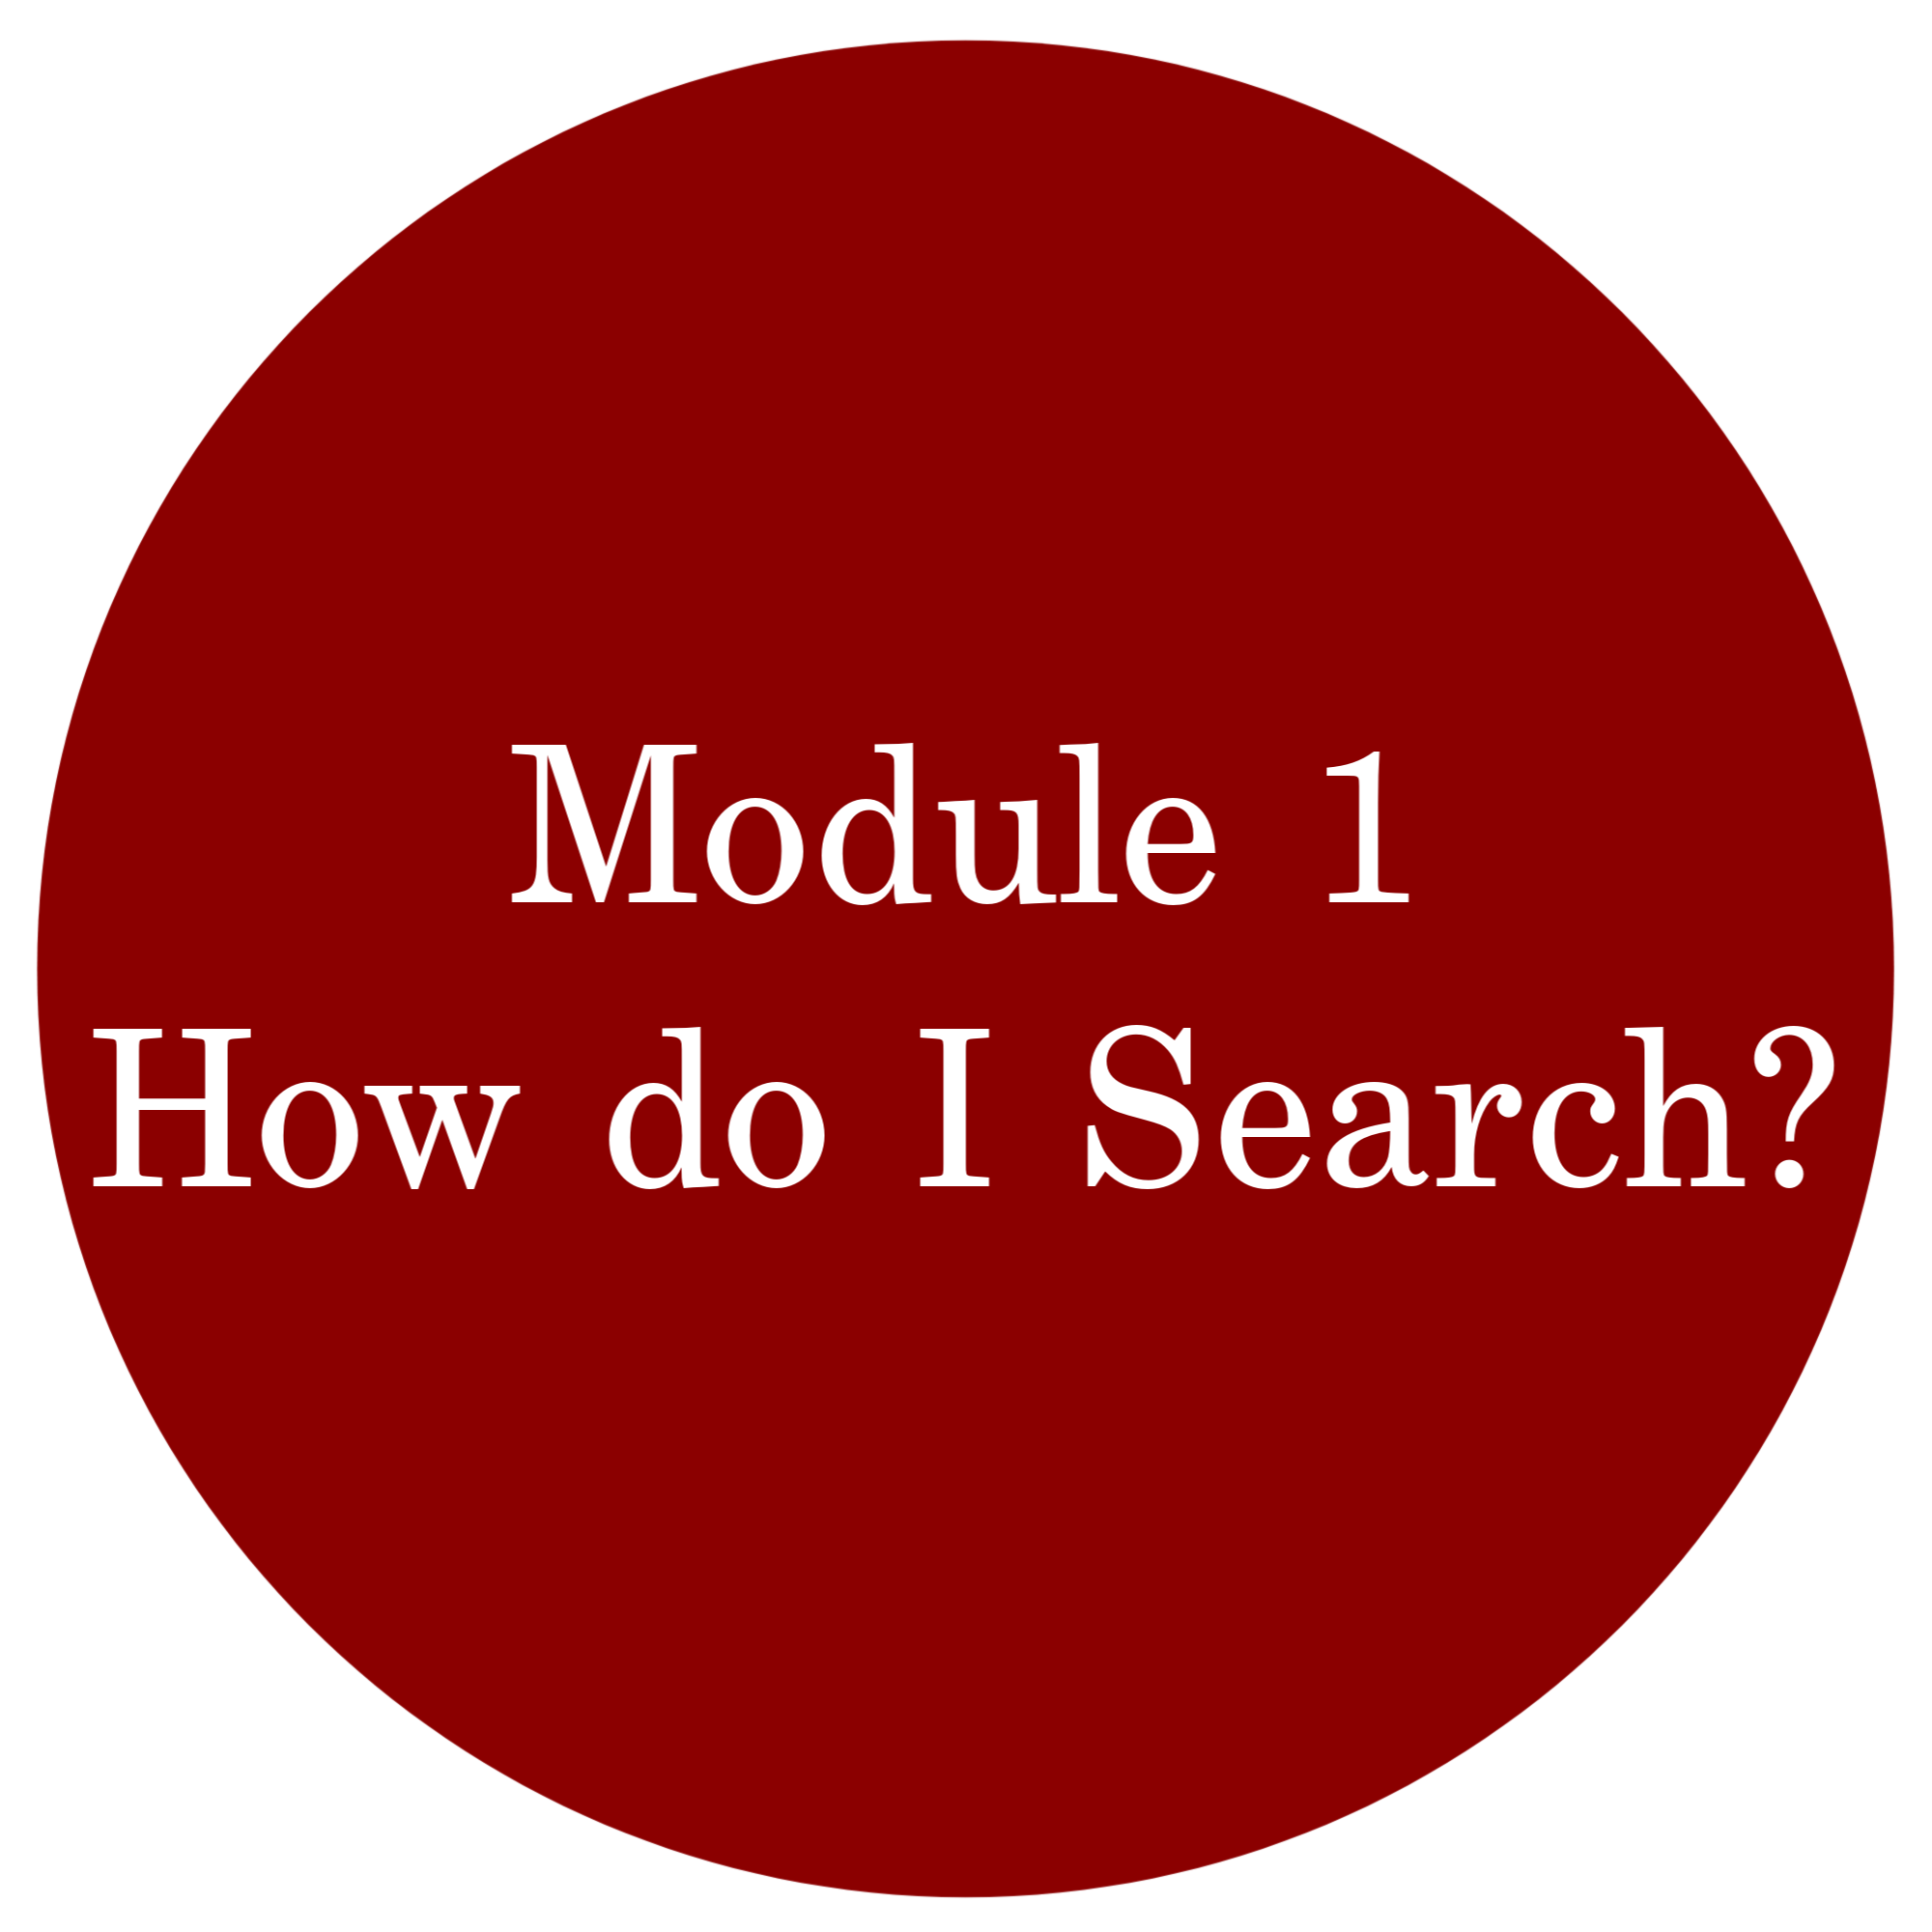 Module 1 How do I Search?